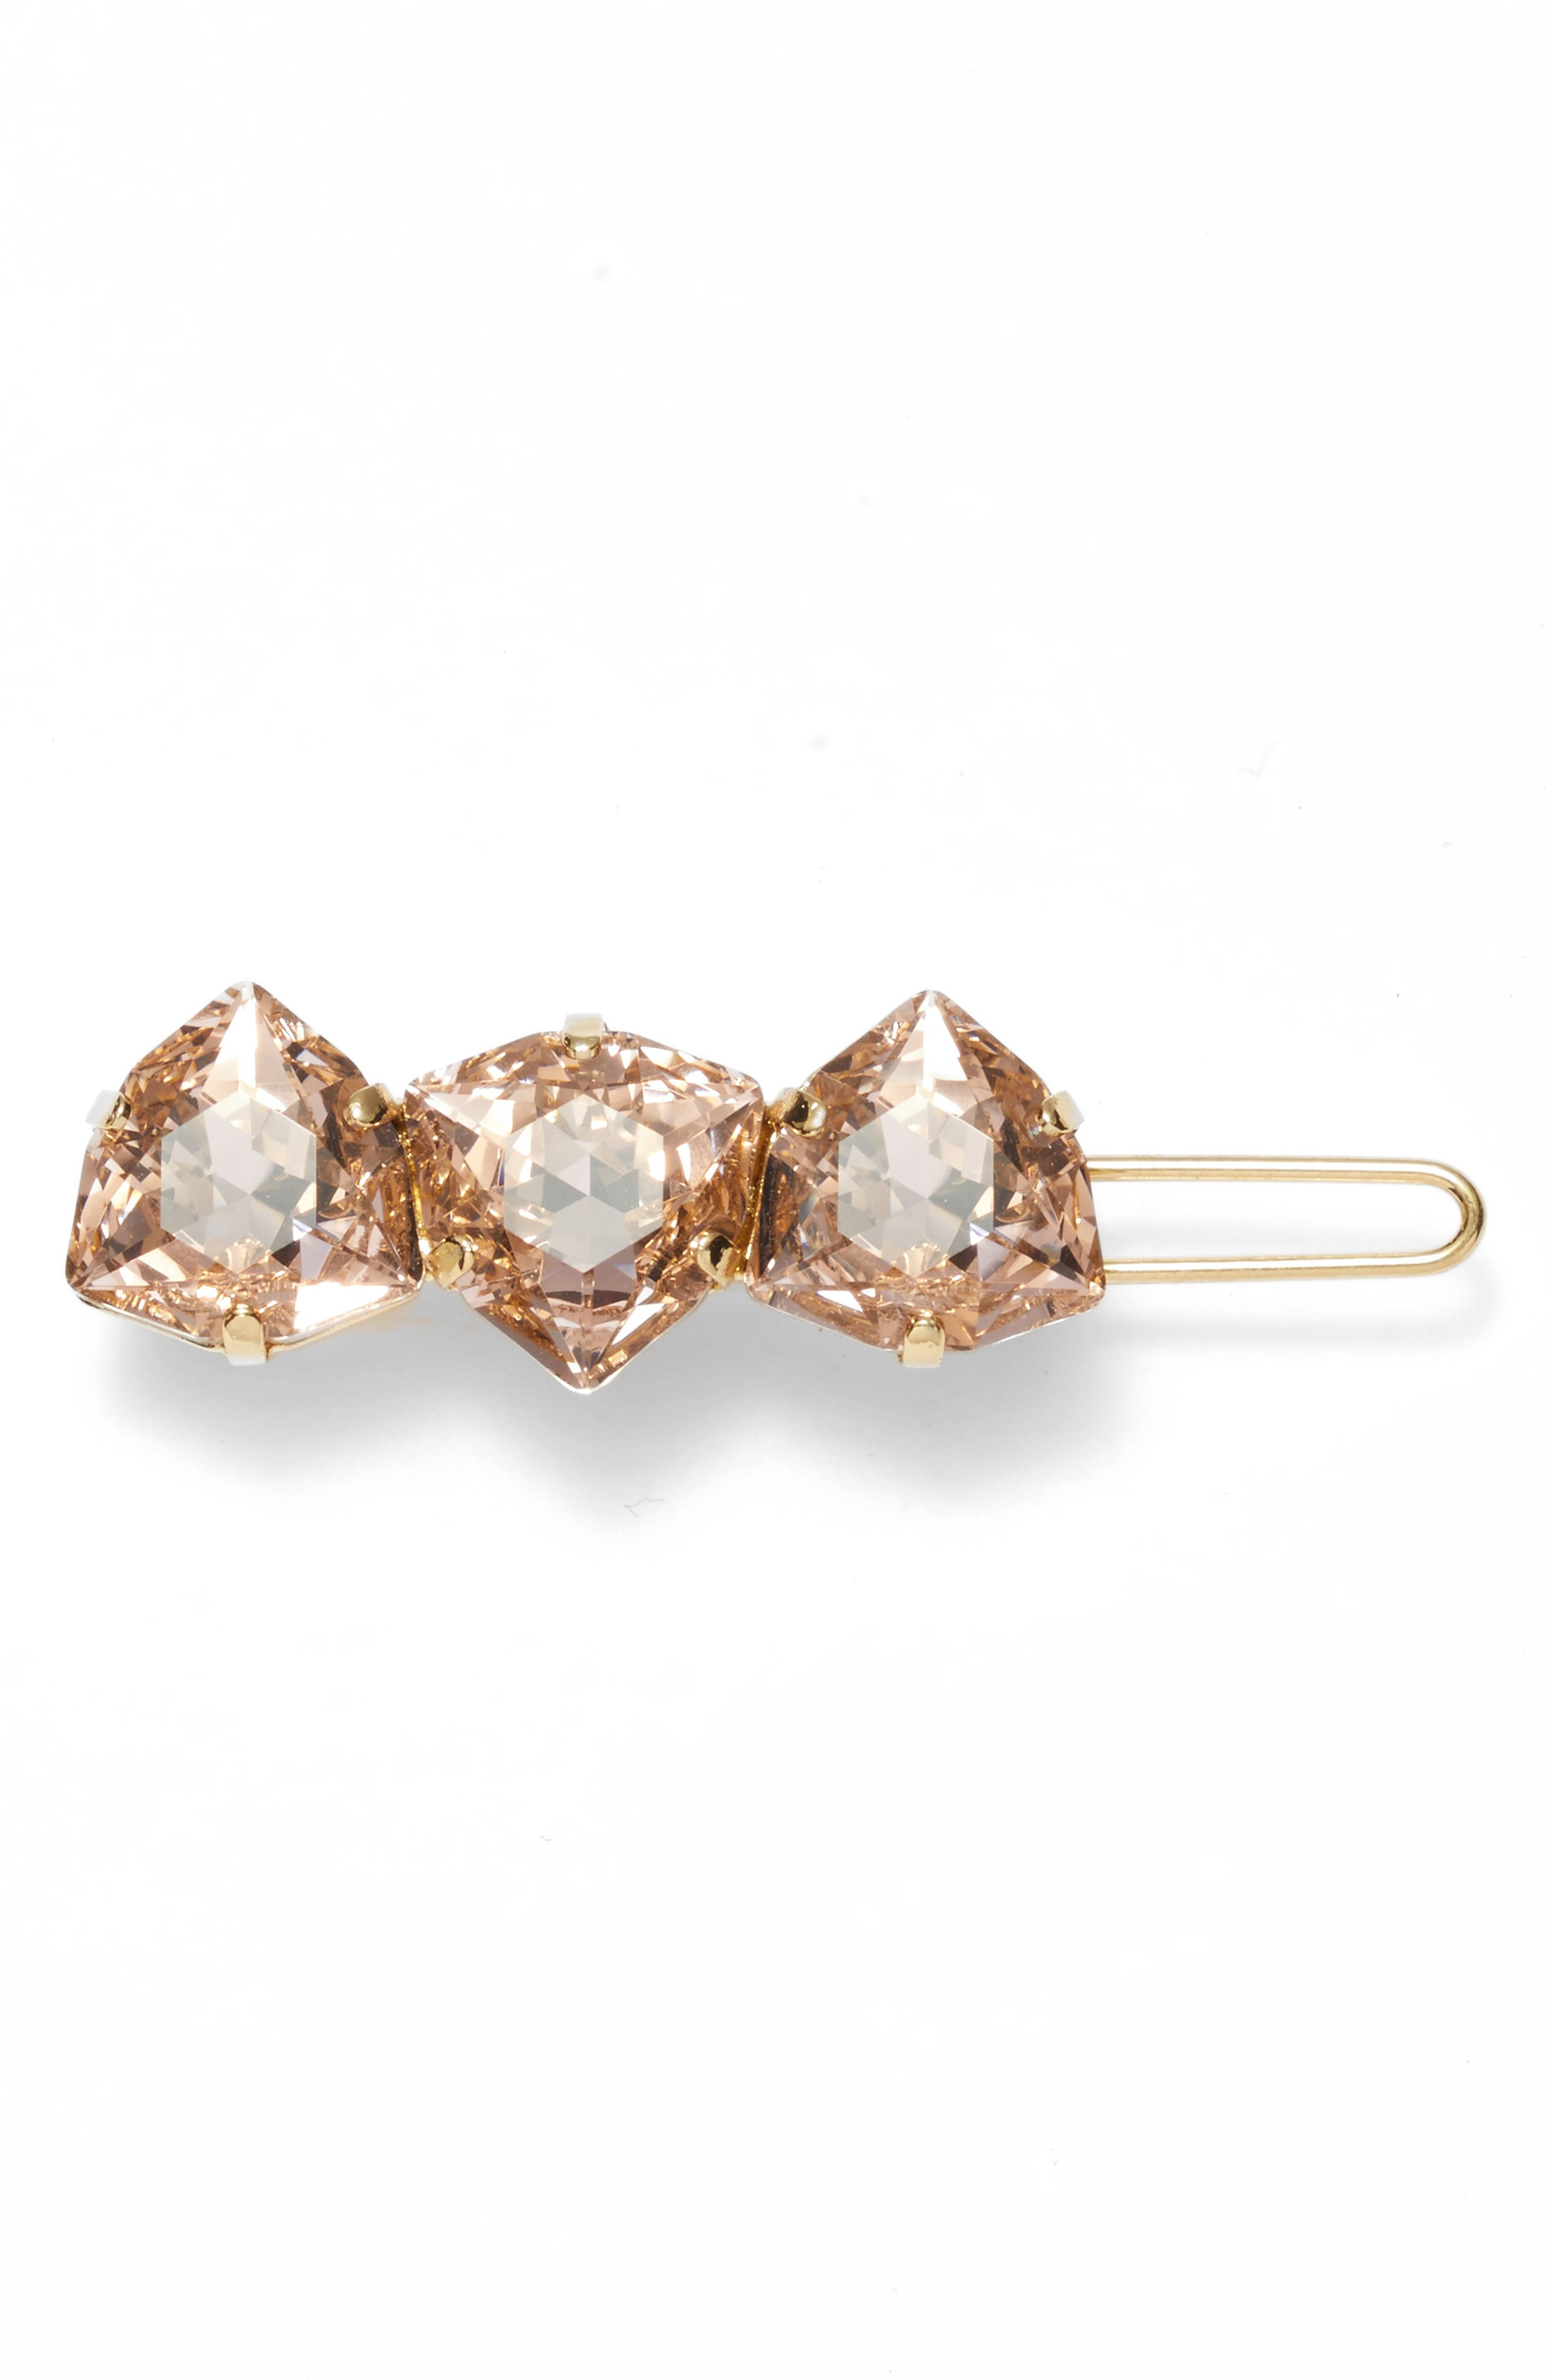 Triple Crystal Tige Boule Barrette,                         Main,                         color, Vintage Rose/ Gold